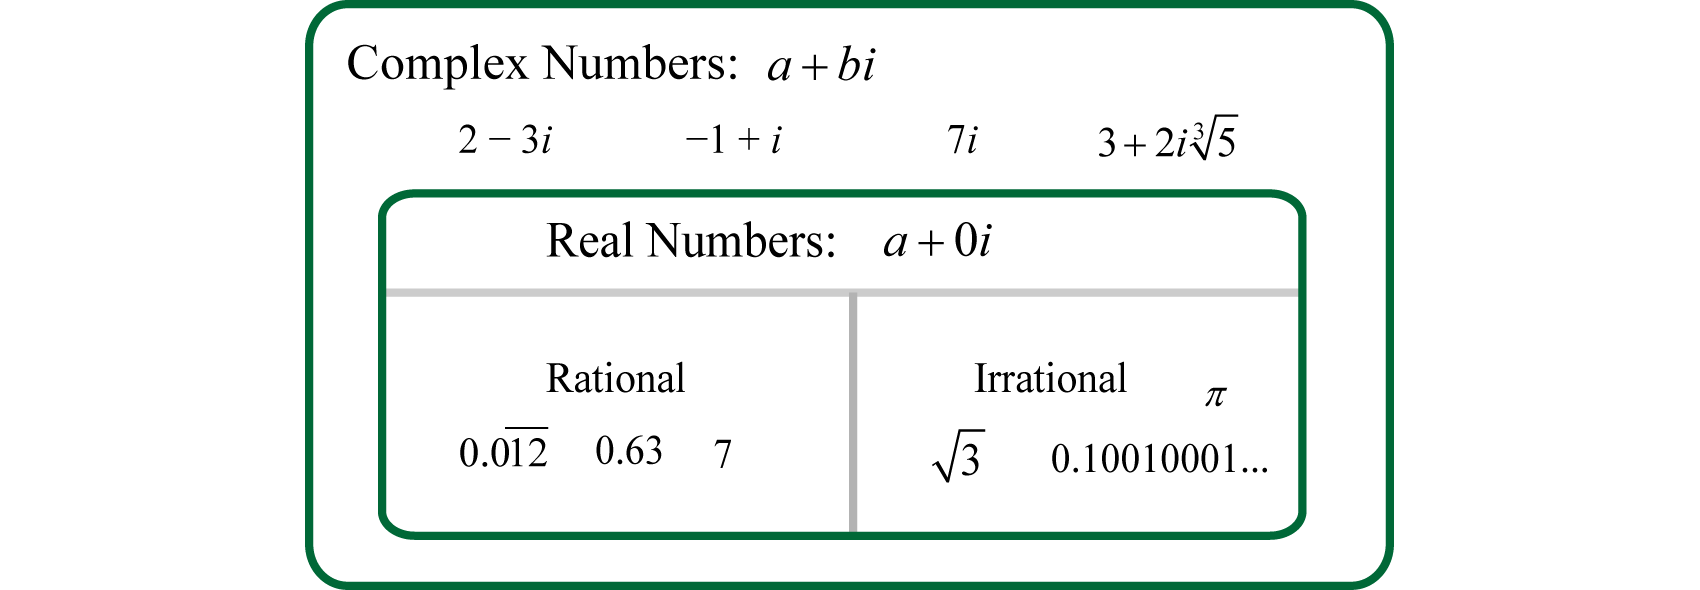 Complex Numbers and Their Operations